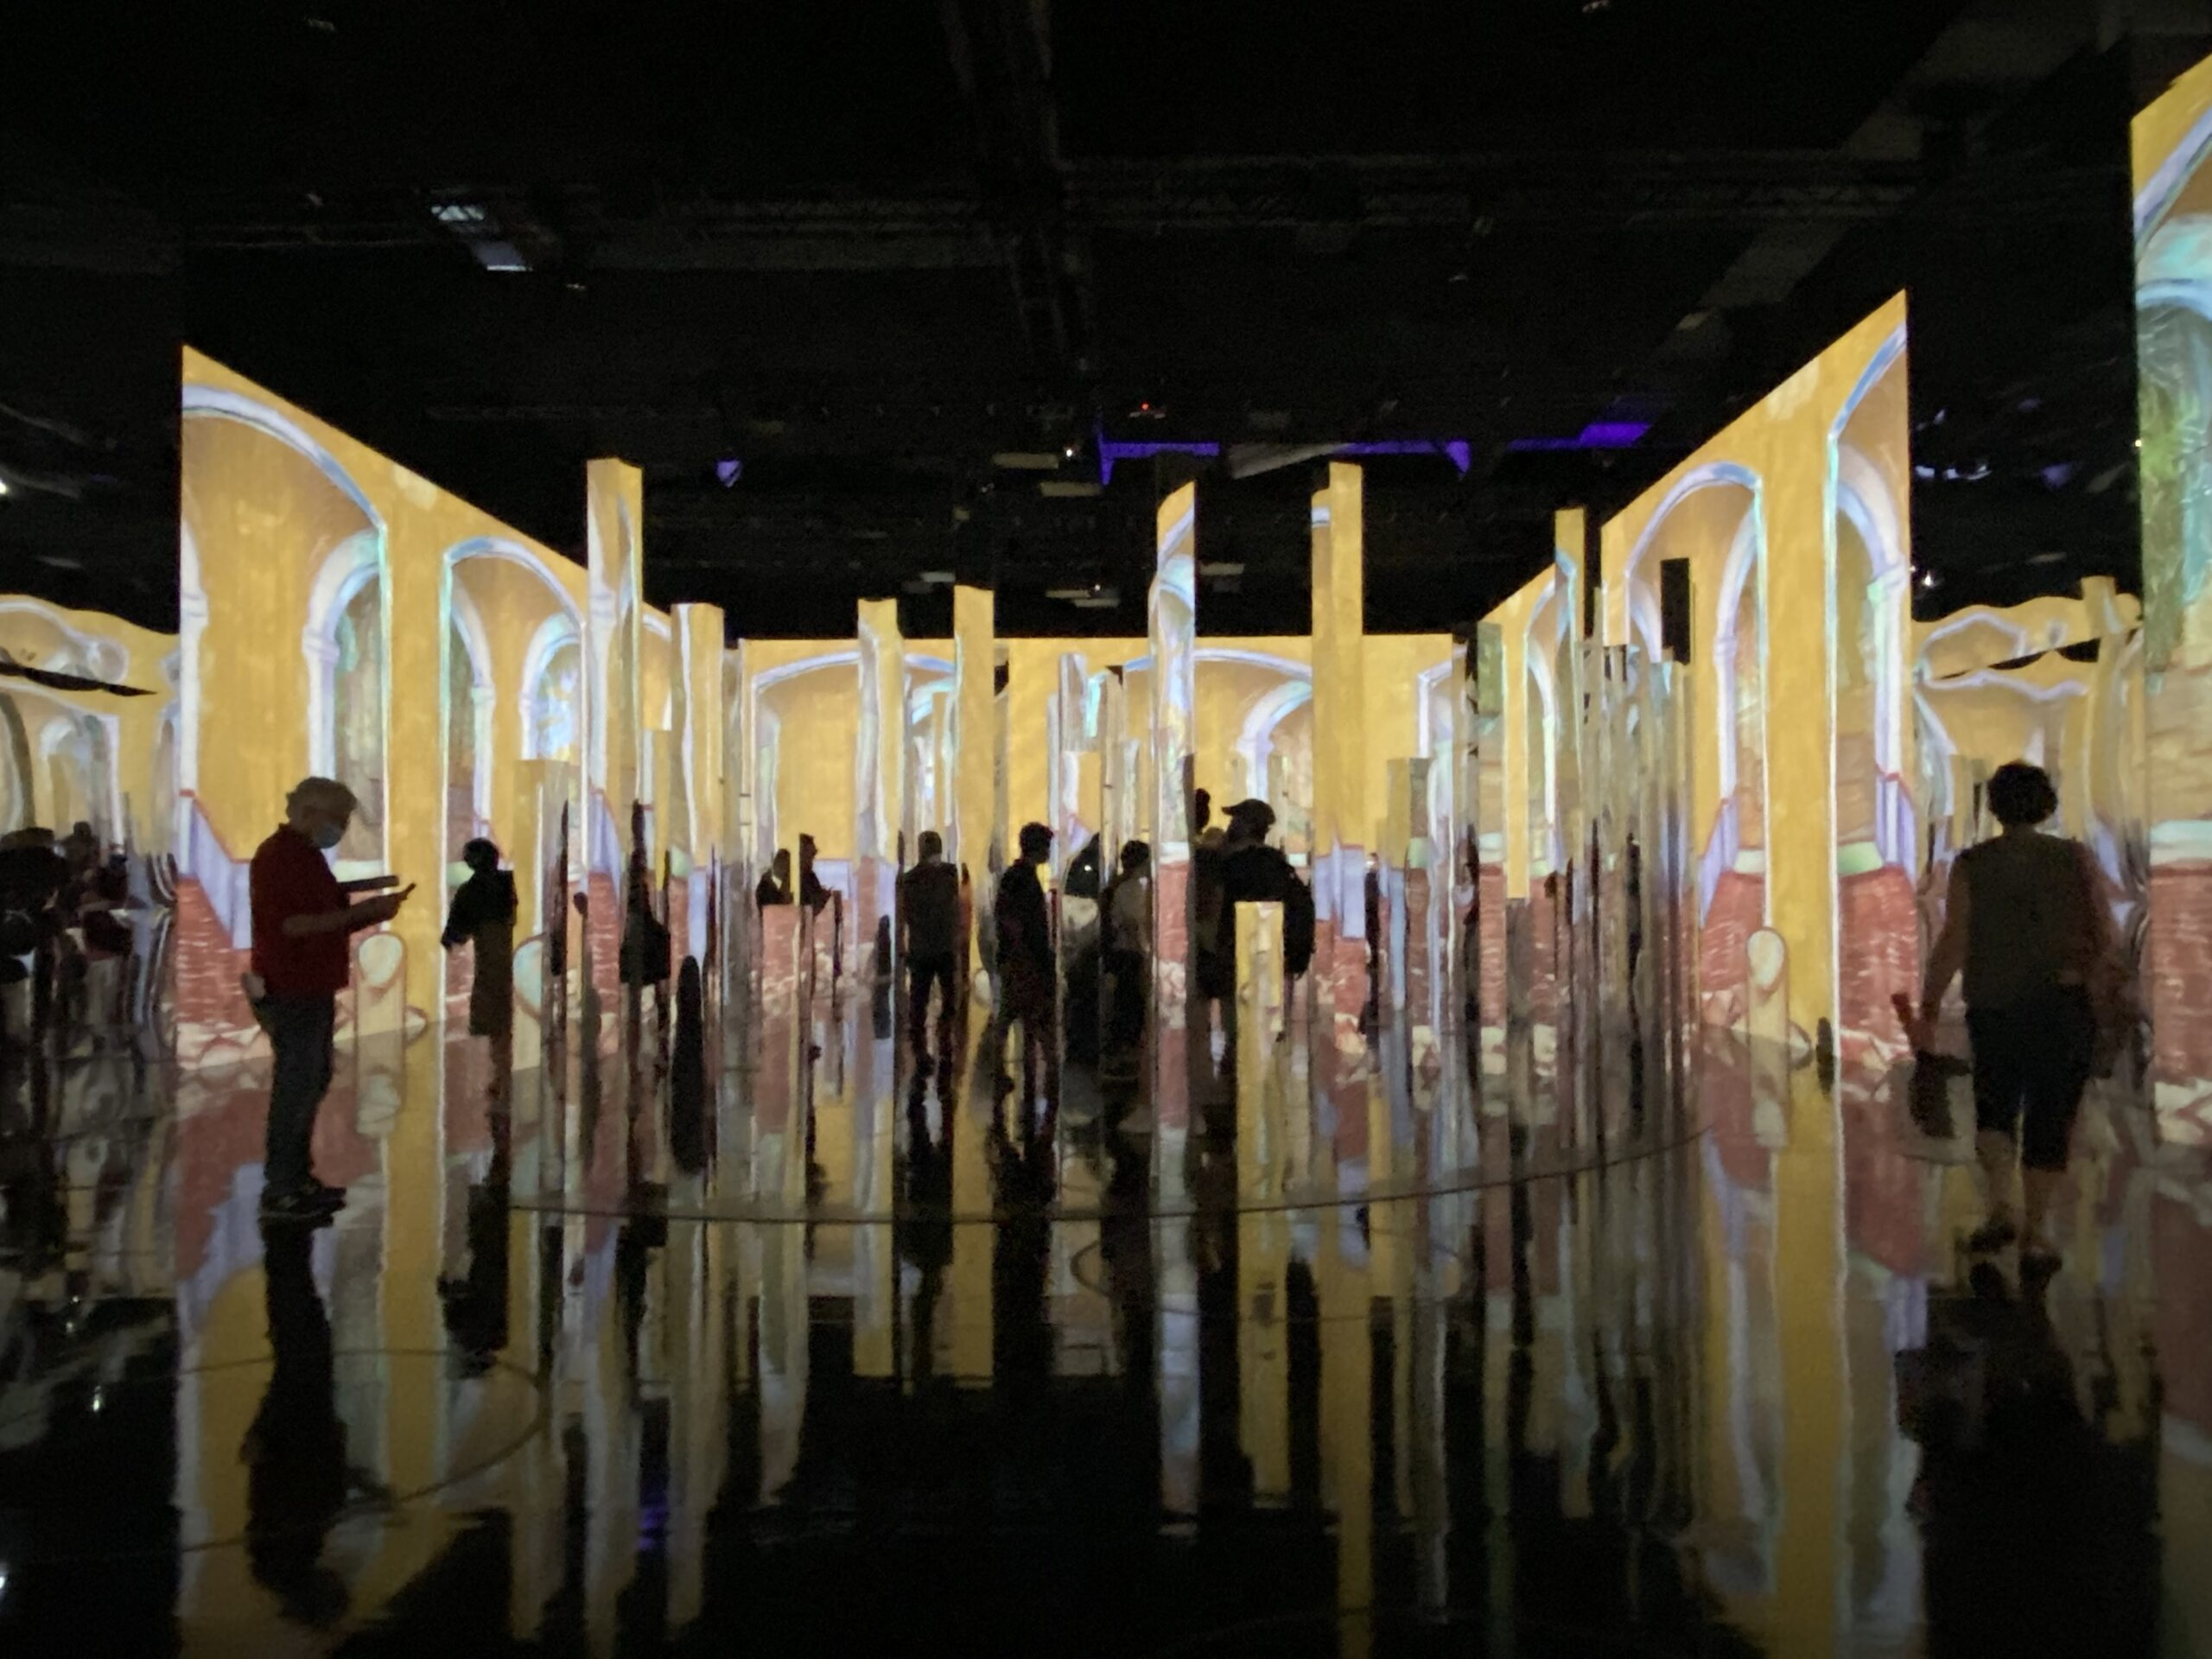 """""""Immersive Van Gogh Exhibit New York,"""" to view the digital art of Van Gogh on 500,000+ cubic feet of projections, 60,600 frames of video, and 90,000,000 pixels!"""